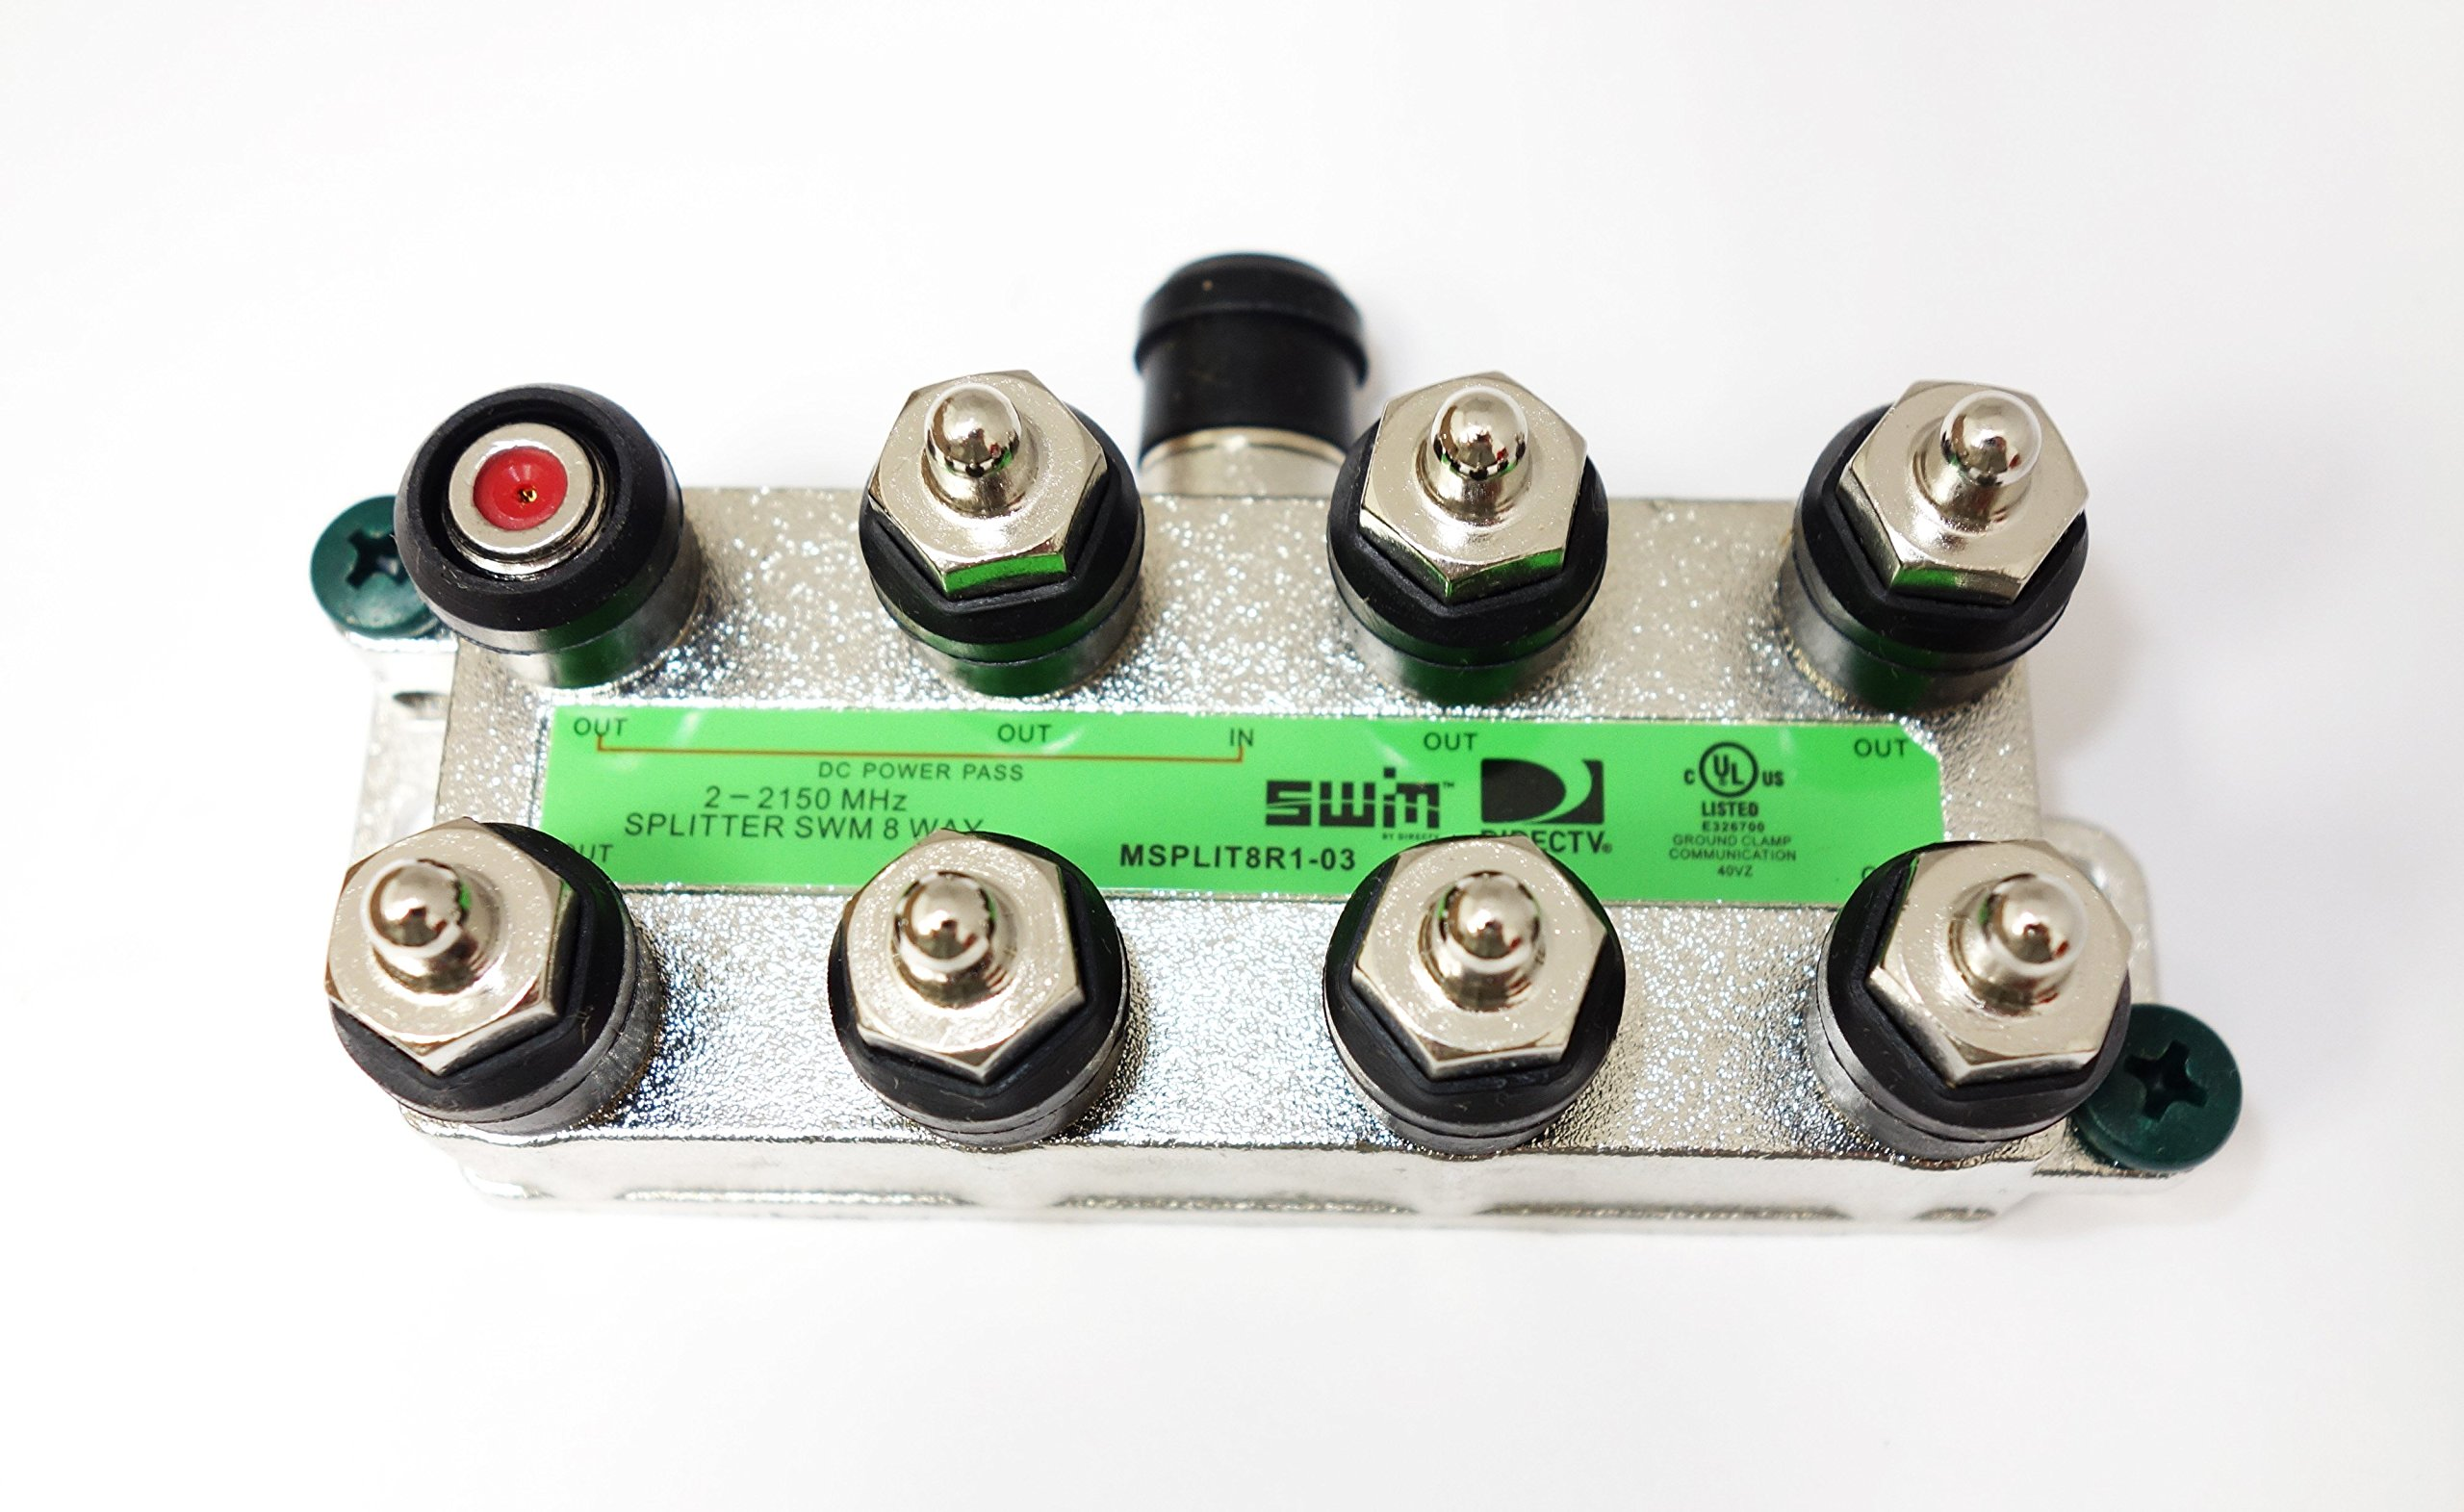 Directv SWM Approved 8-Way Splitter (2)